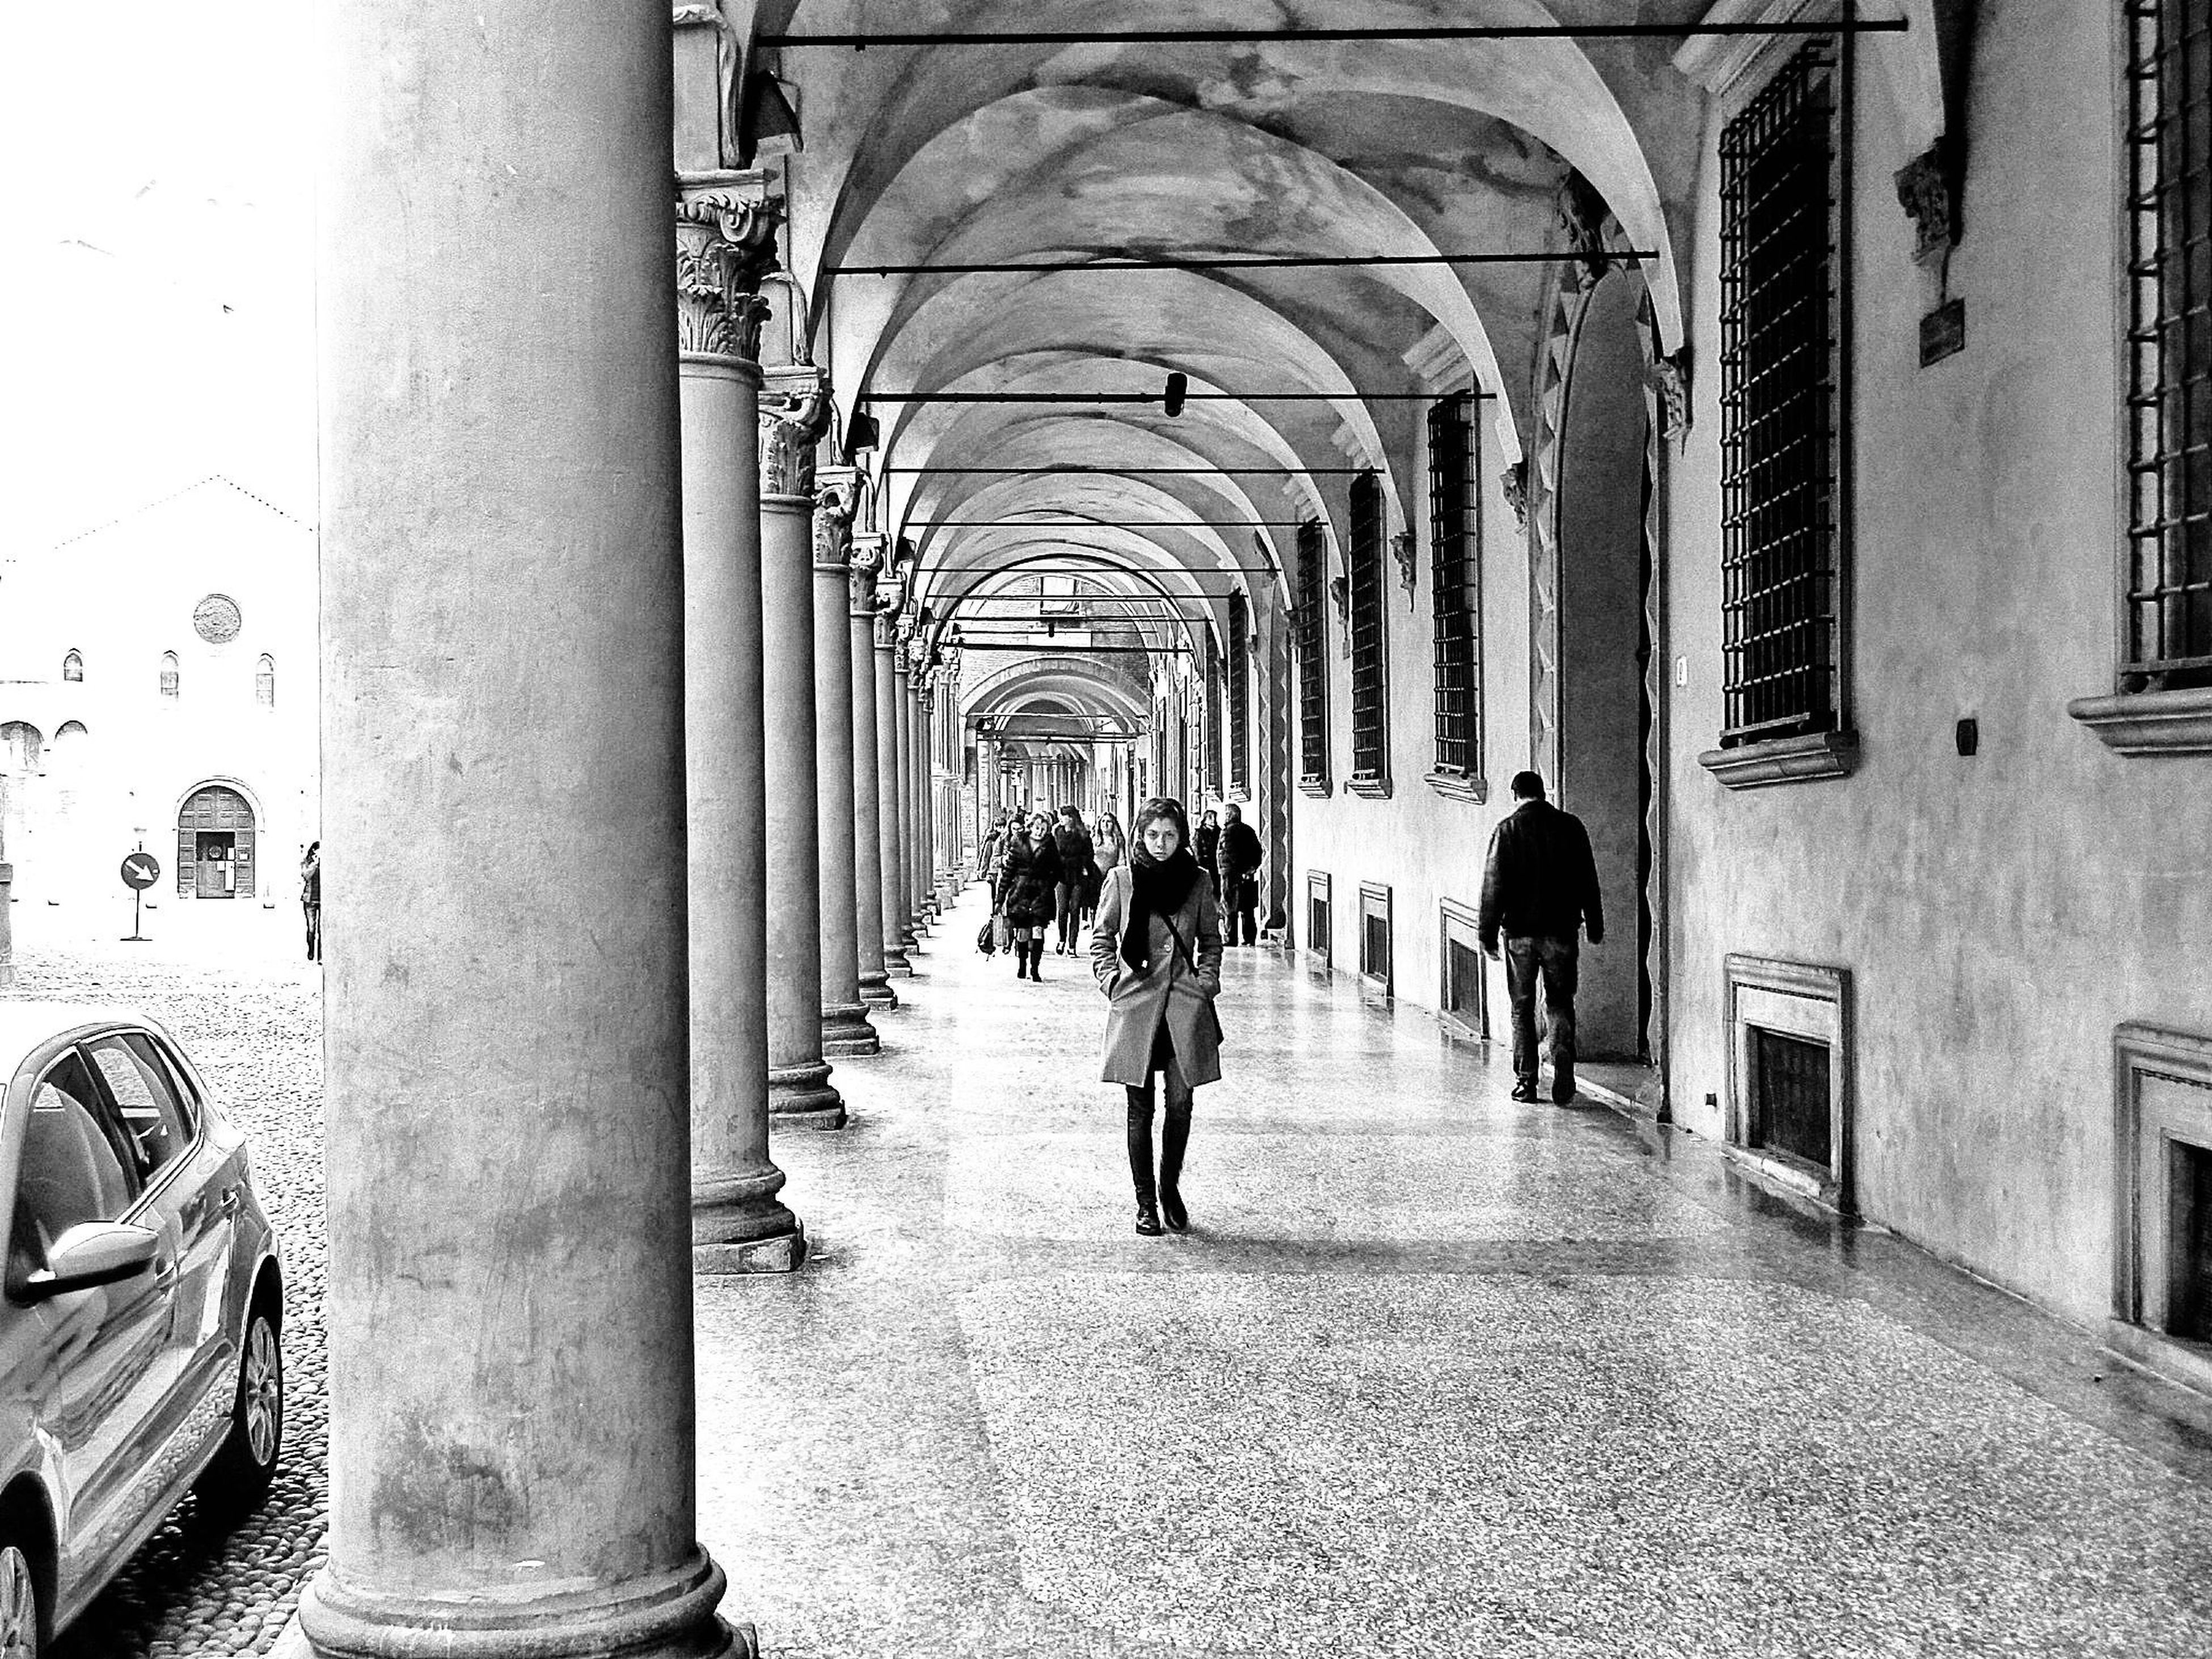 architecture, built structure, building exterior, arch, men, walking, the way forward, indoors, person, street, building, lifestyles, city, large group of people, diminishing perspective, incidental people, day, city life, leisure activity